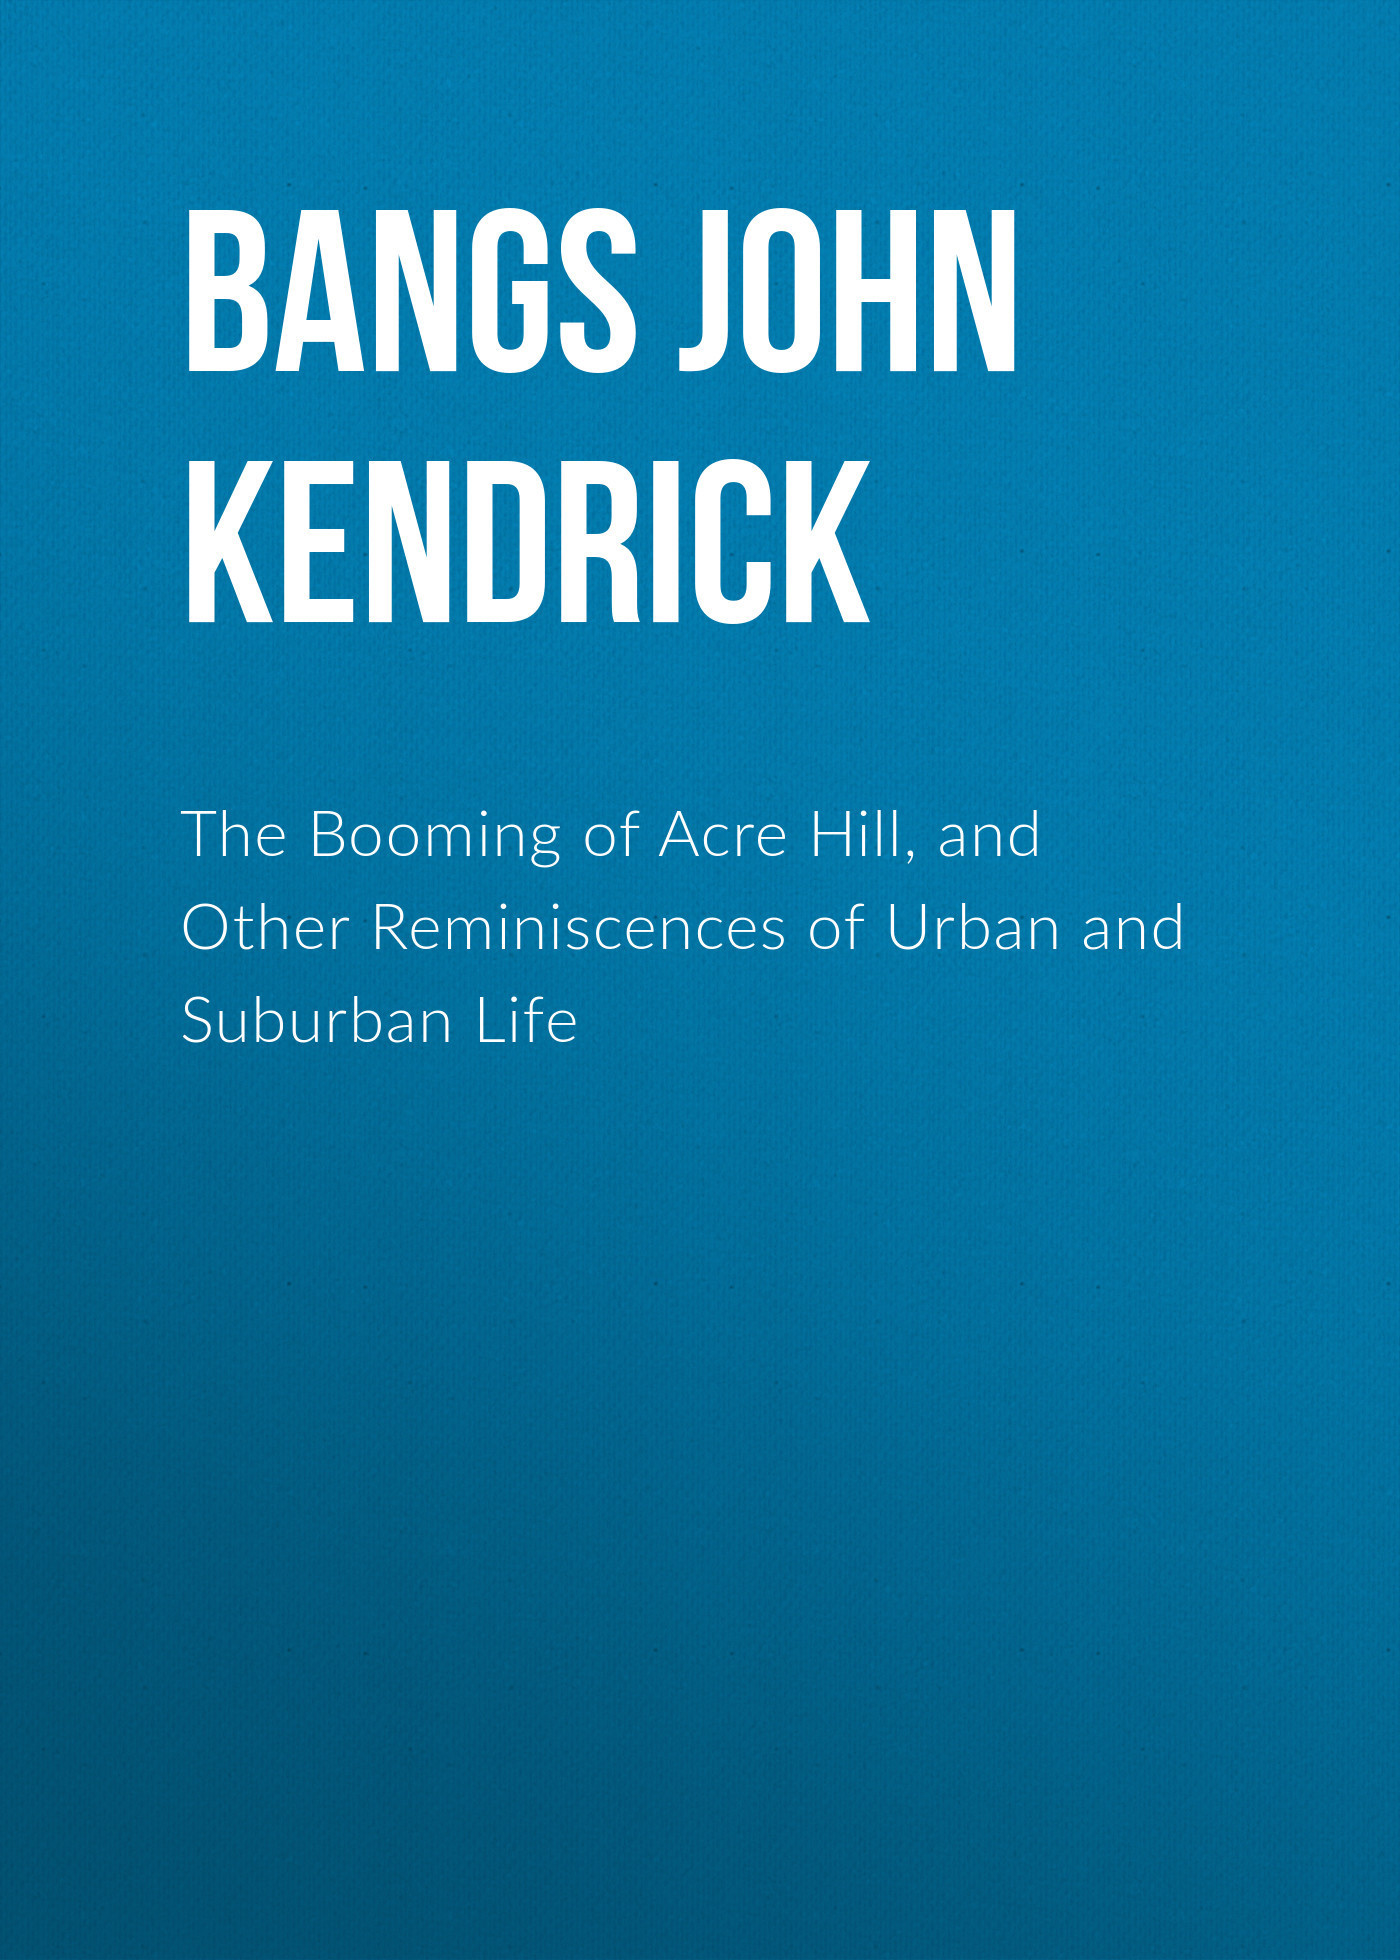 Bangs John Kendrick The Booming of Acre Hill, and Other Reminiscences of Urban and Suburban Life maniates belle kanaris penny of top hill trail